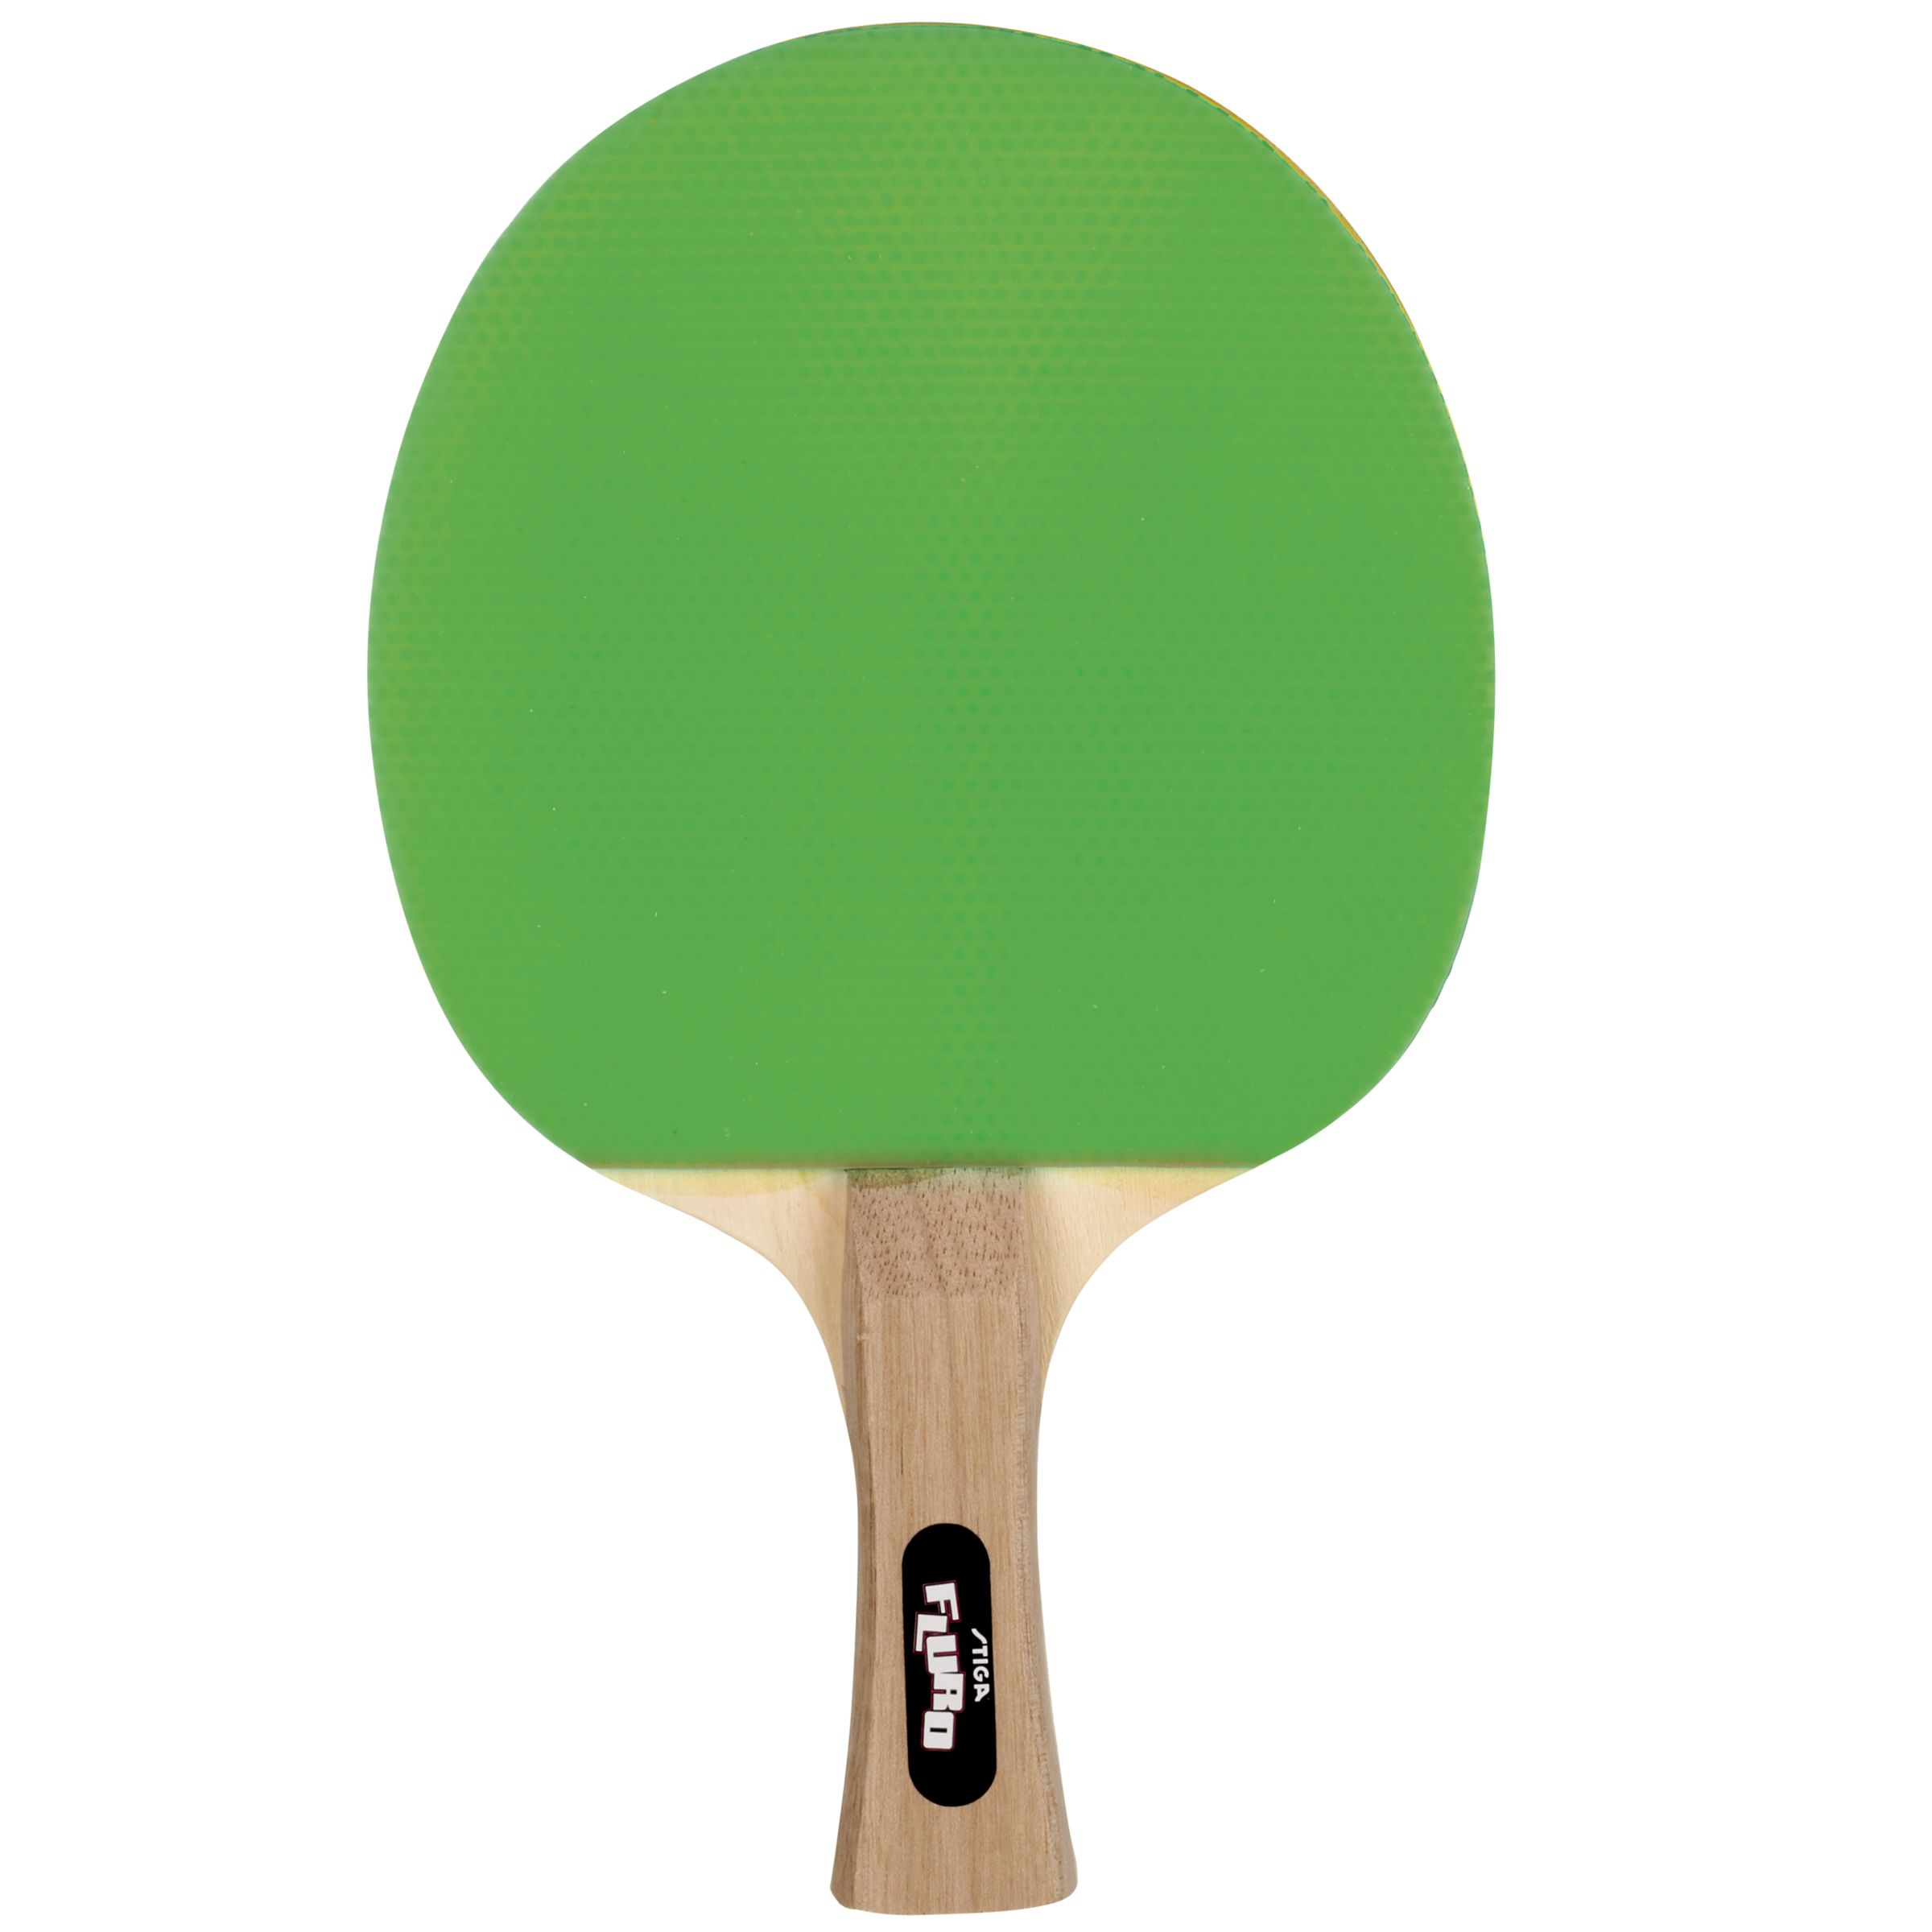 Stiga Fluoro Table Tennis Bat